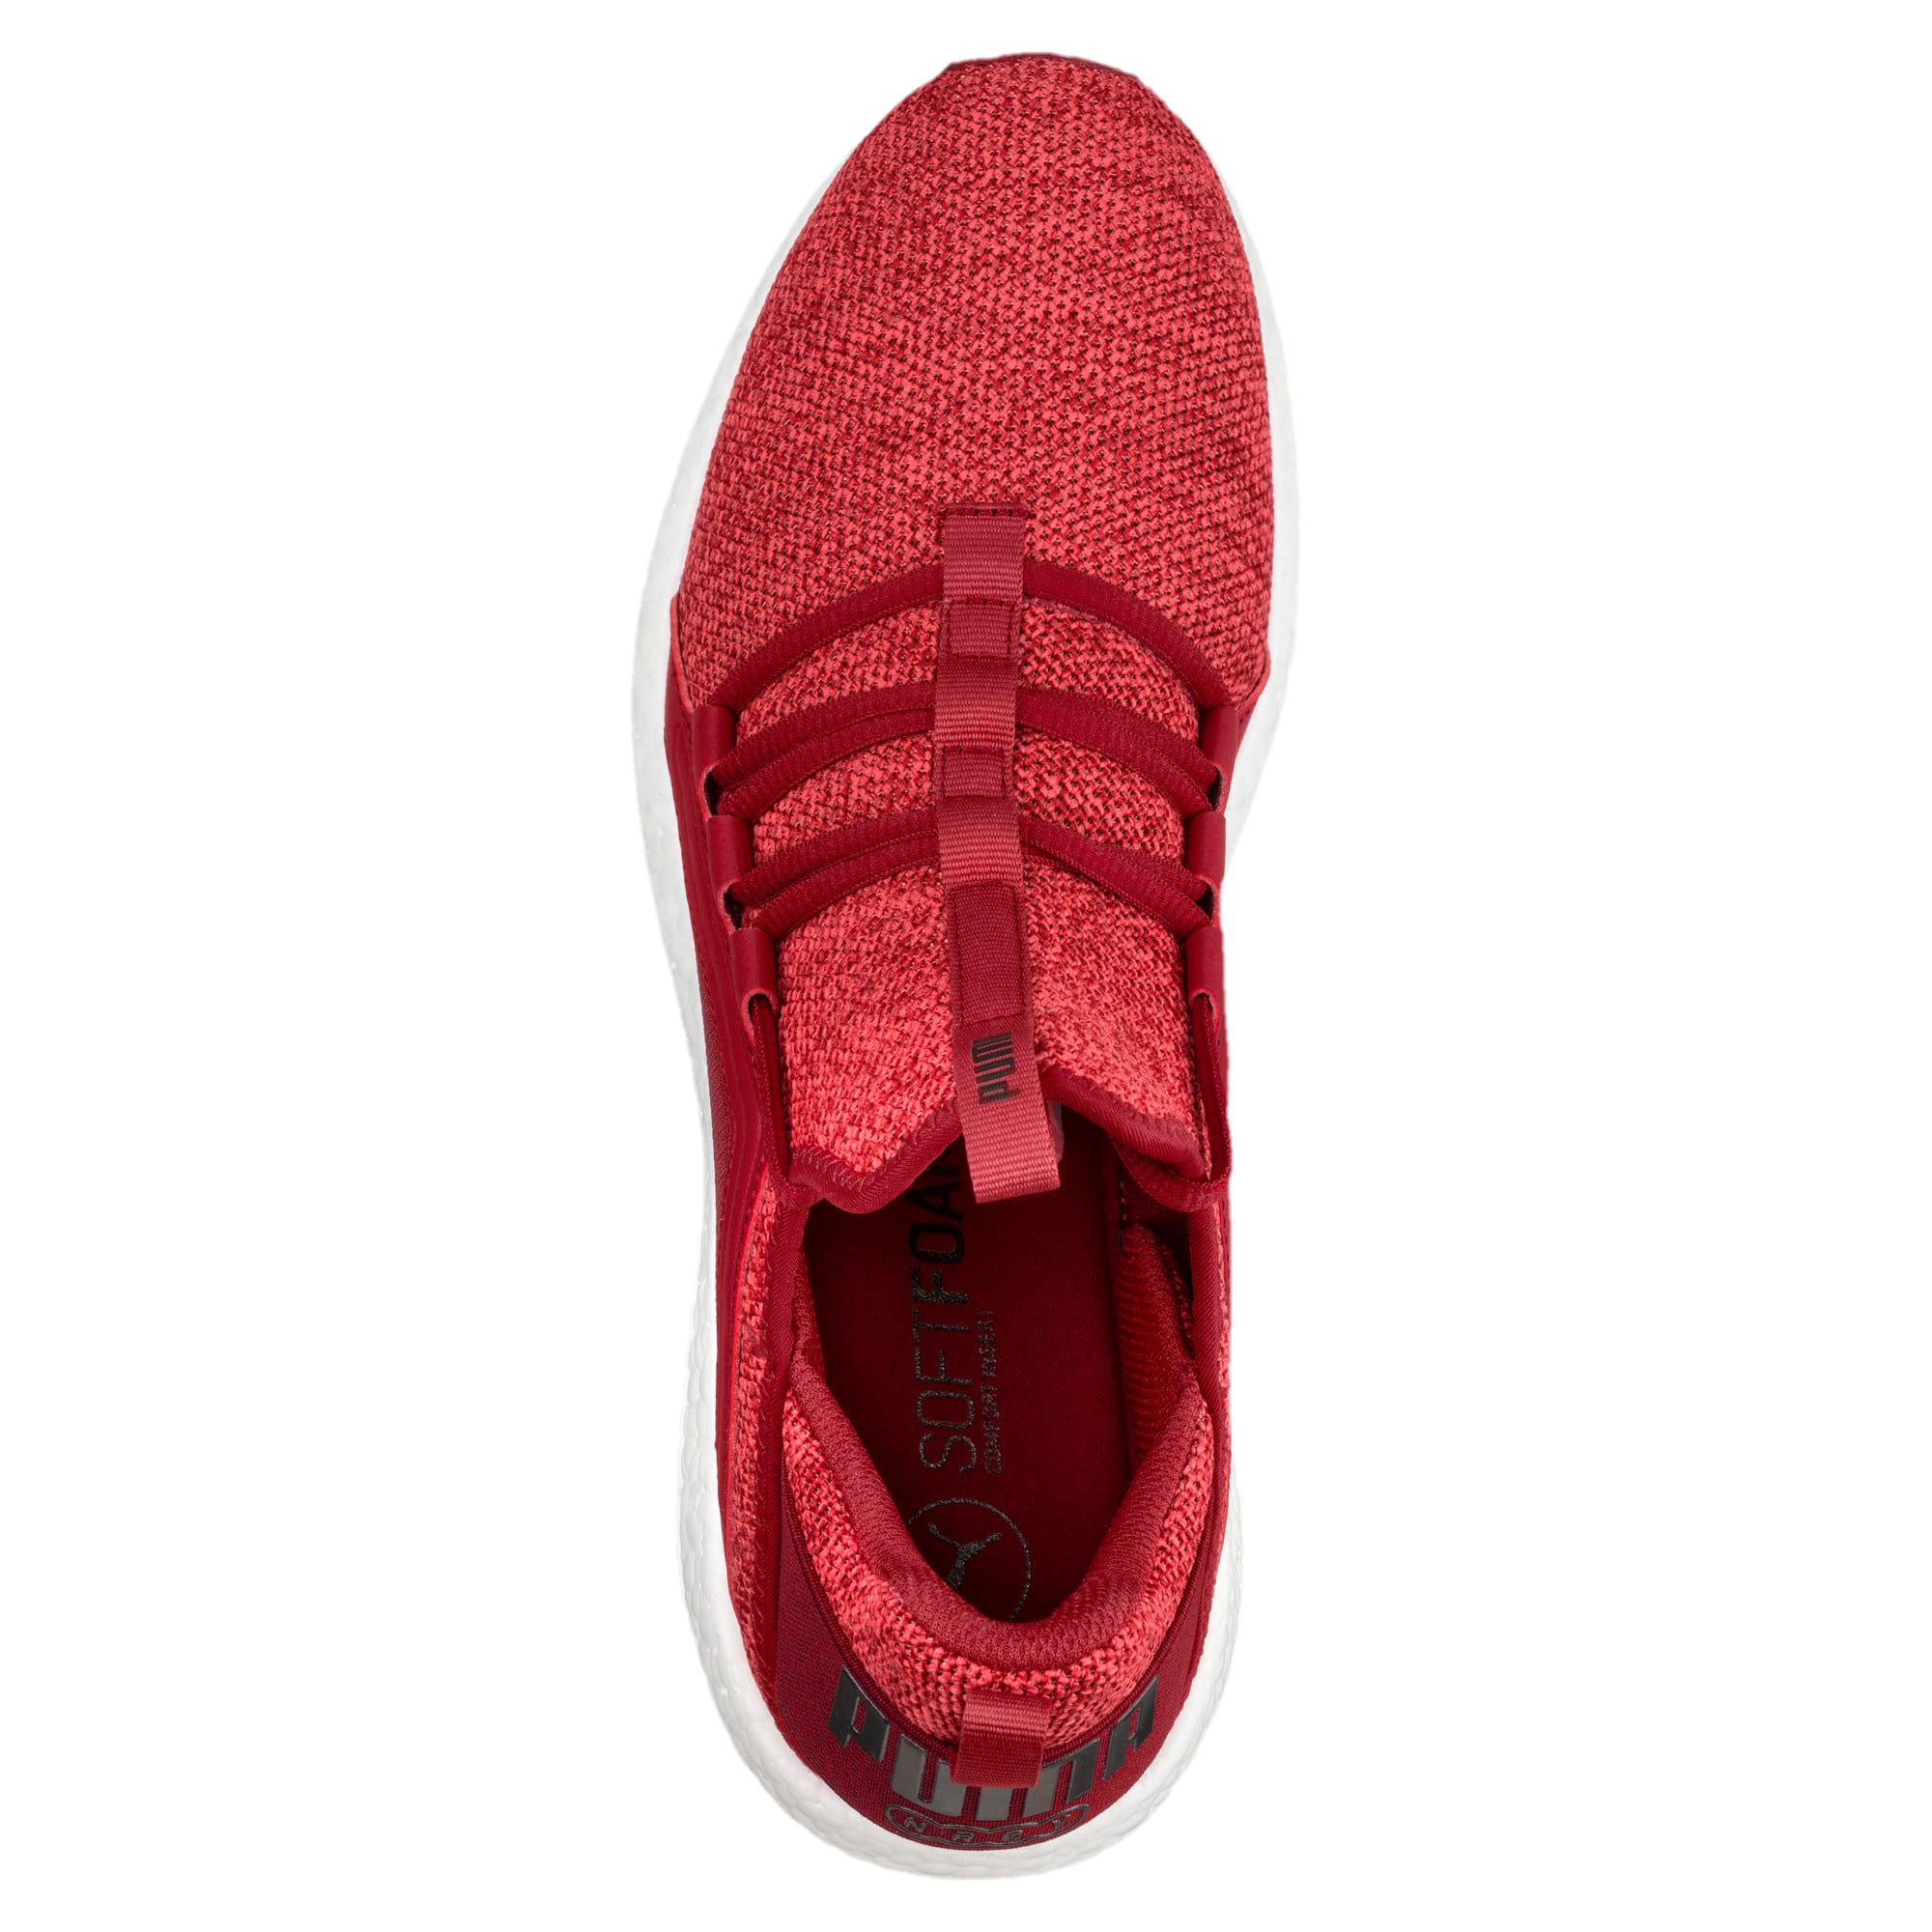 Thumbnail 5 of Mega NRGY Knit Men's Running Shoes, Red Dahlia-Flame Scarlet-Blk, medium